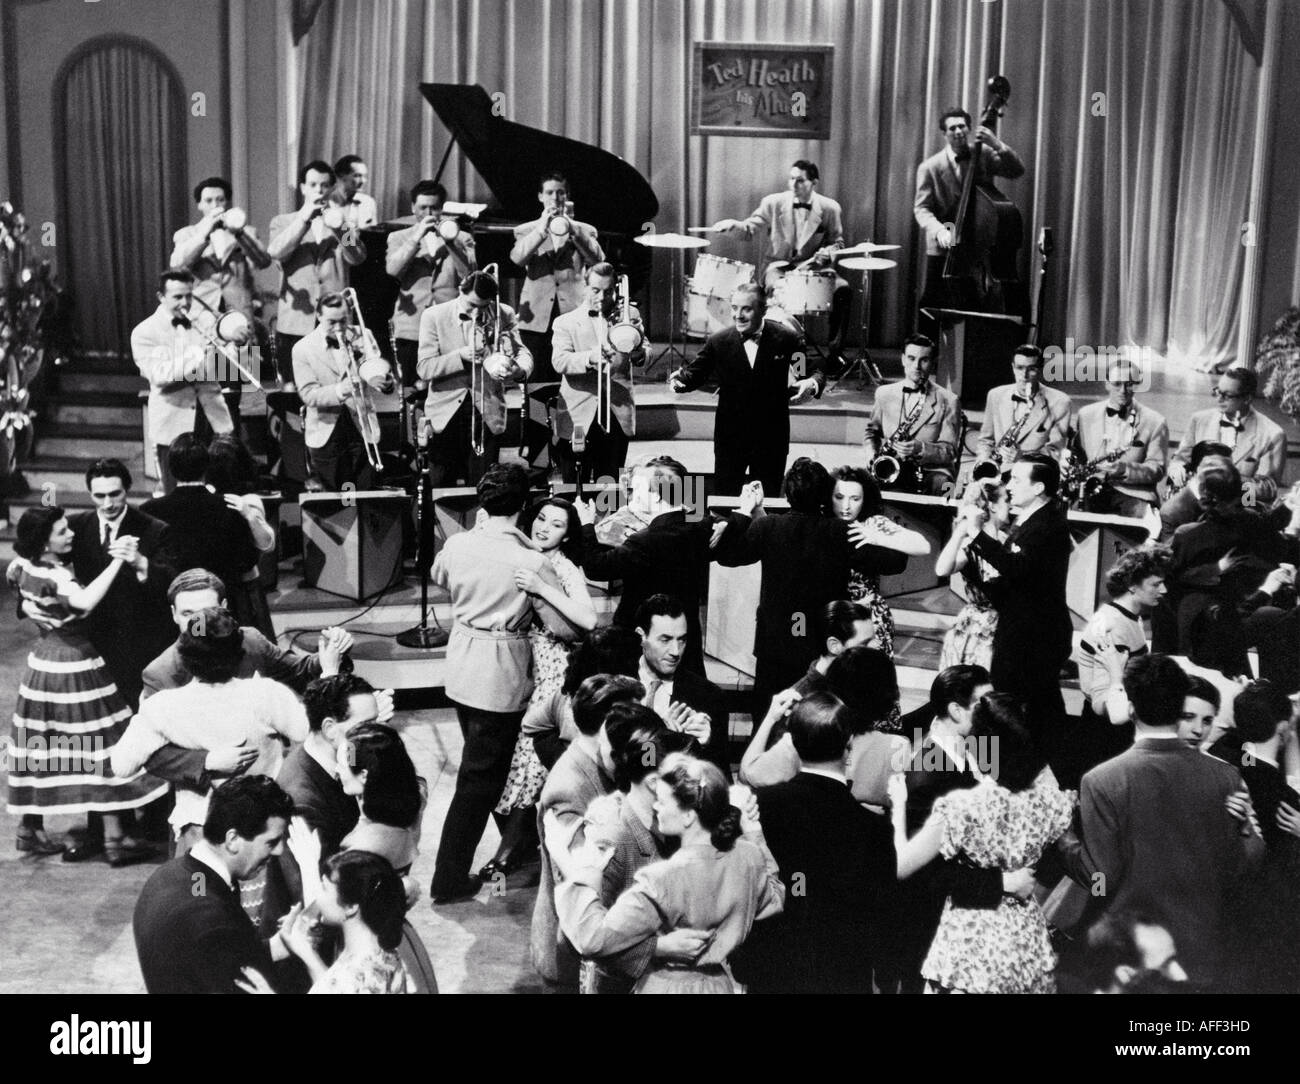 TED HEATH DANCE BAND UK orchestra about 1957 - Stock Image